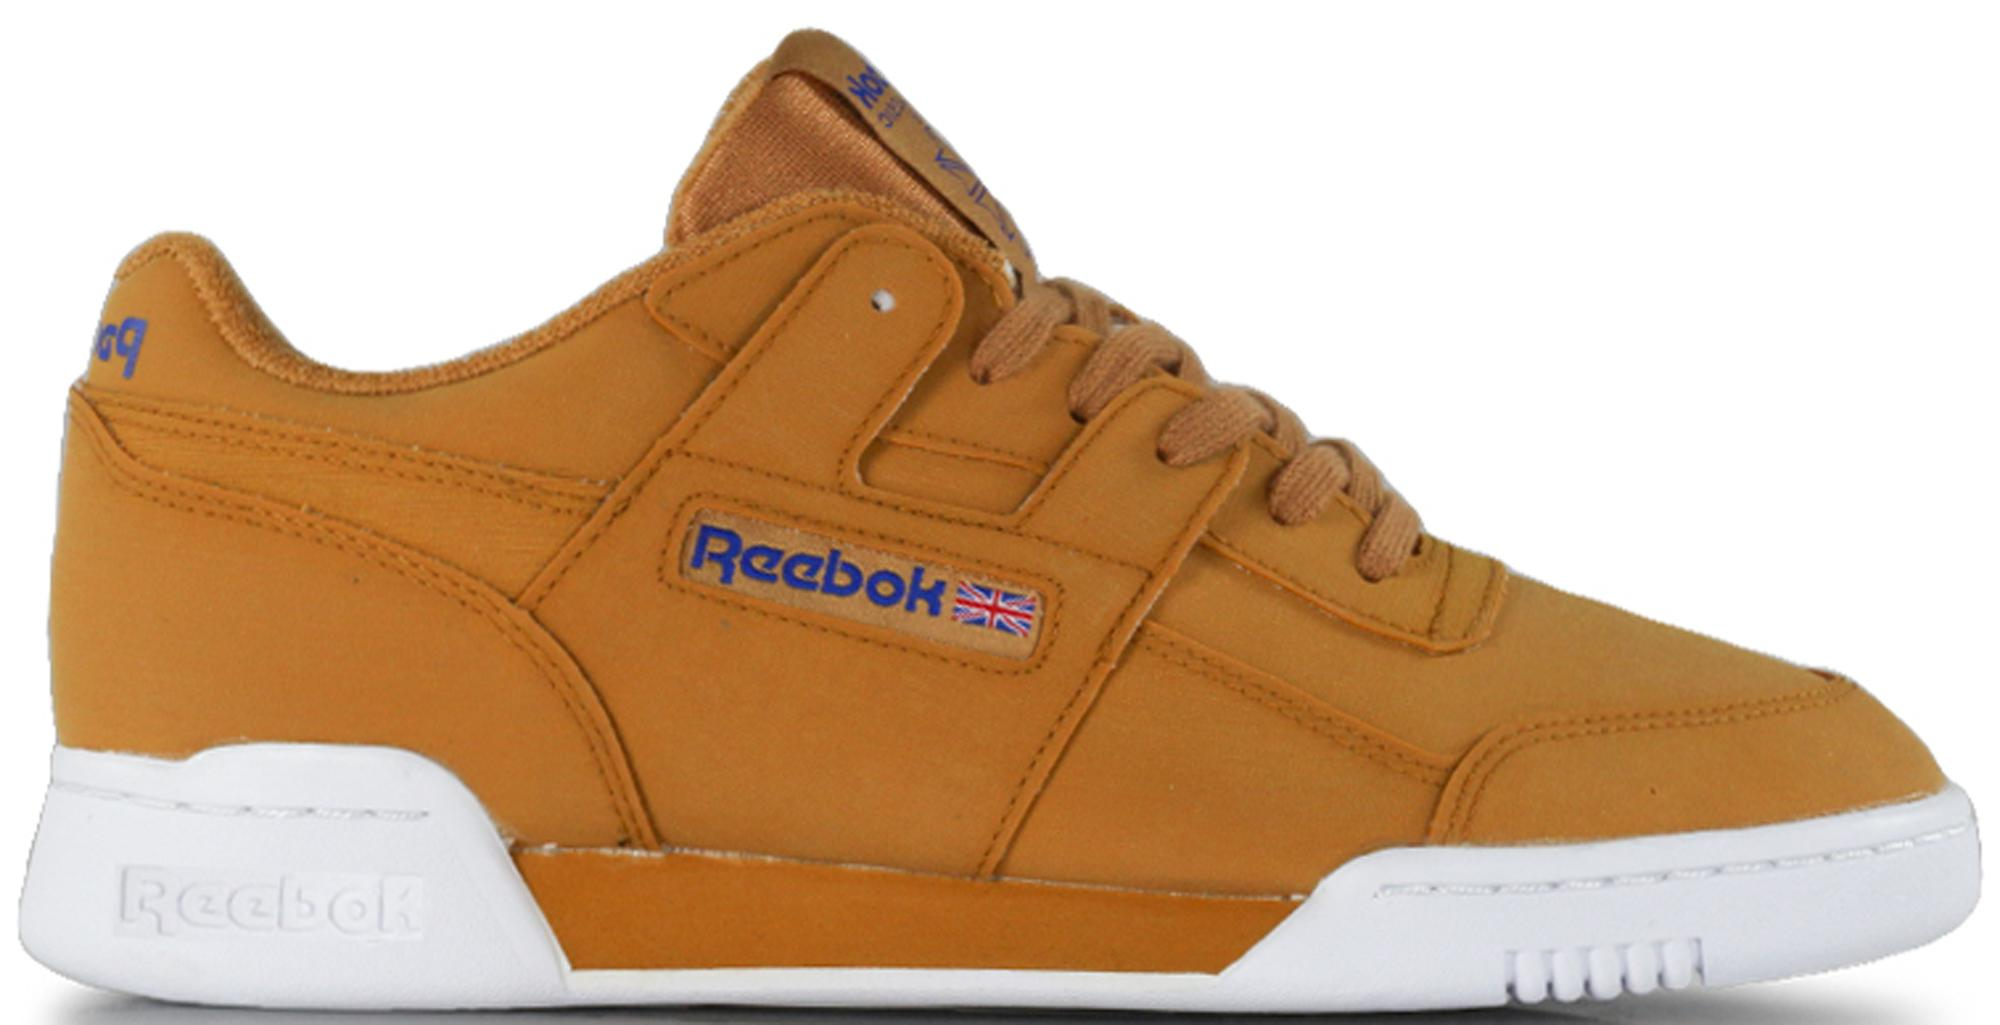 ed1a43c1a6c Lyst - Reebok Workout Lo Plus Packer Shoes Reverse Gum in Brown for Men